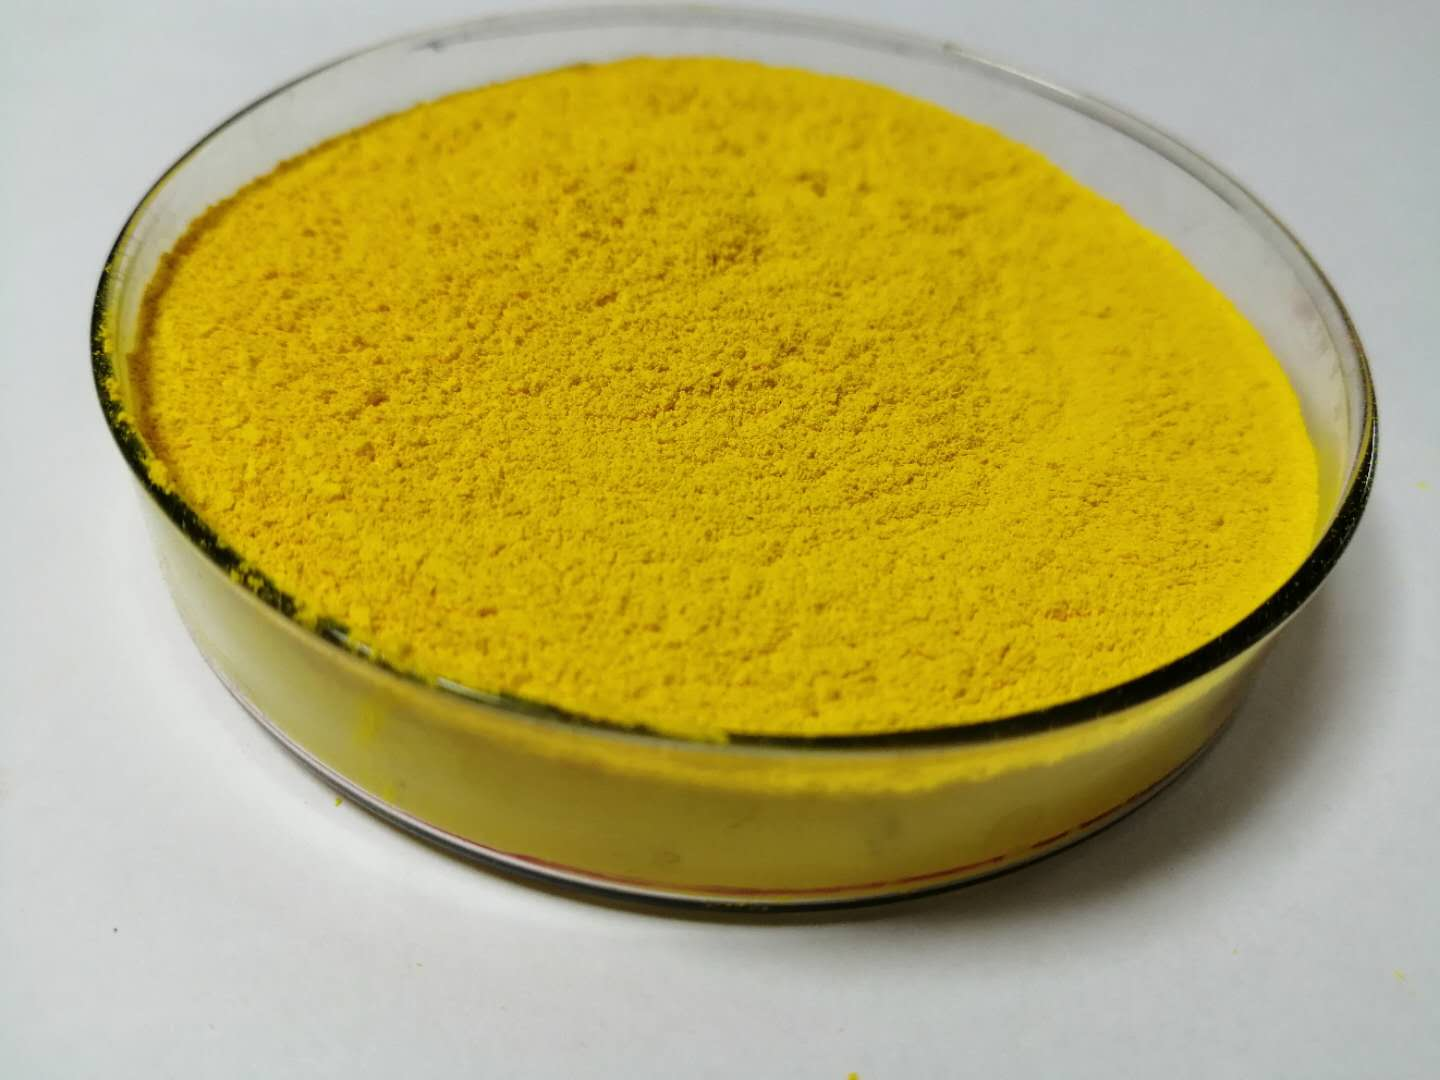 6314-WI-26 Excellent Chemical Stability Good Bleeding Resistance Suitable Viscosity For Water-based Ink